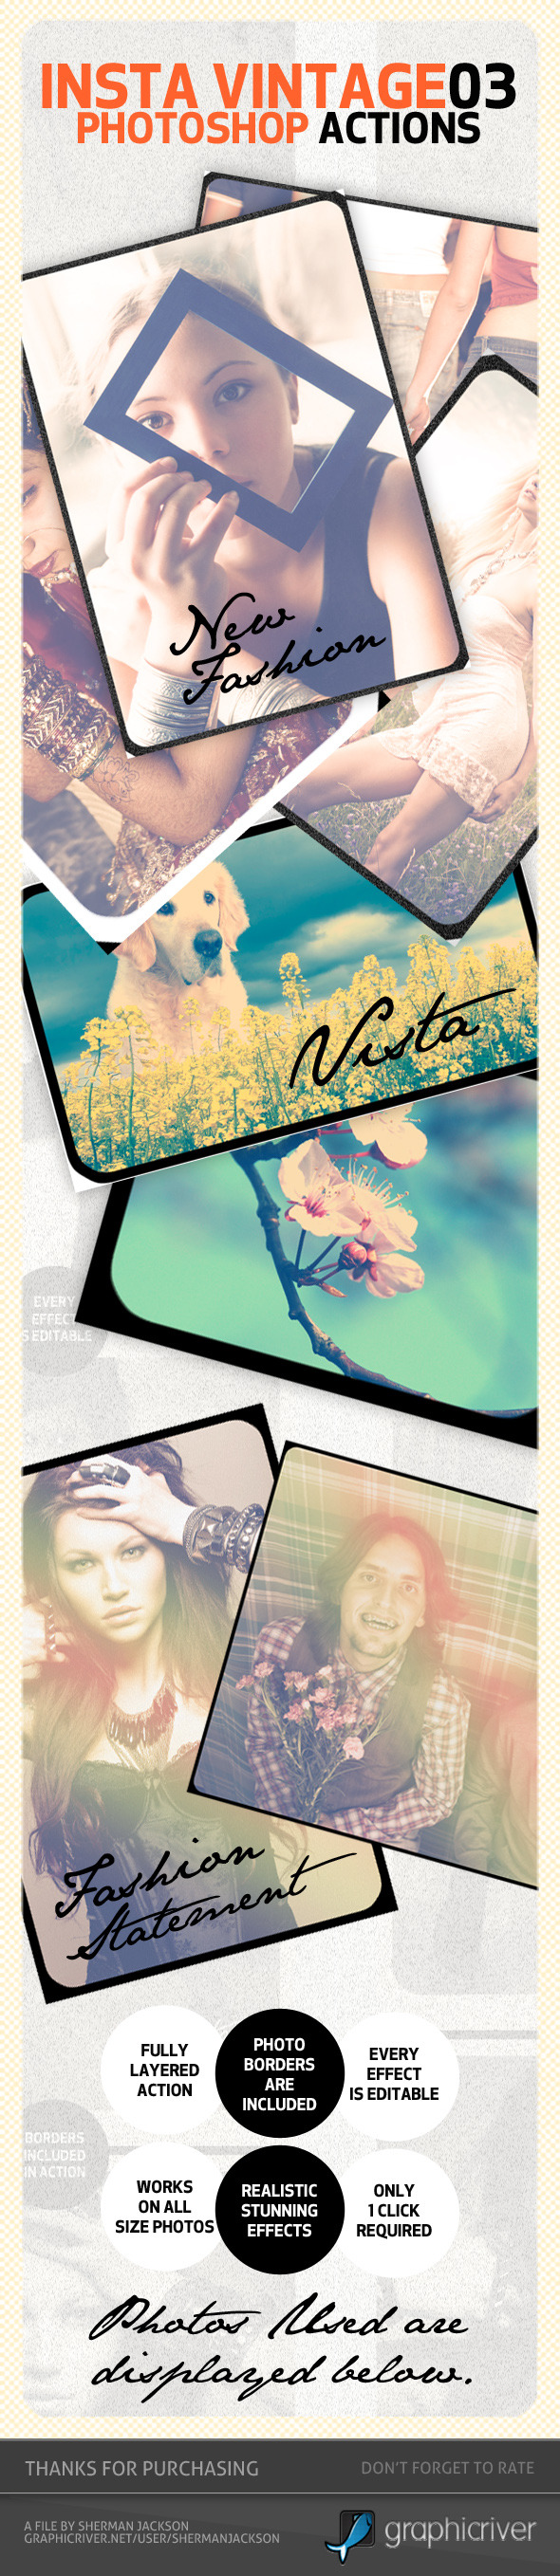 INSTA Vintage Photoshop Actions (ATN)#3 - Photo Effects Actions